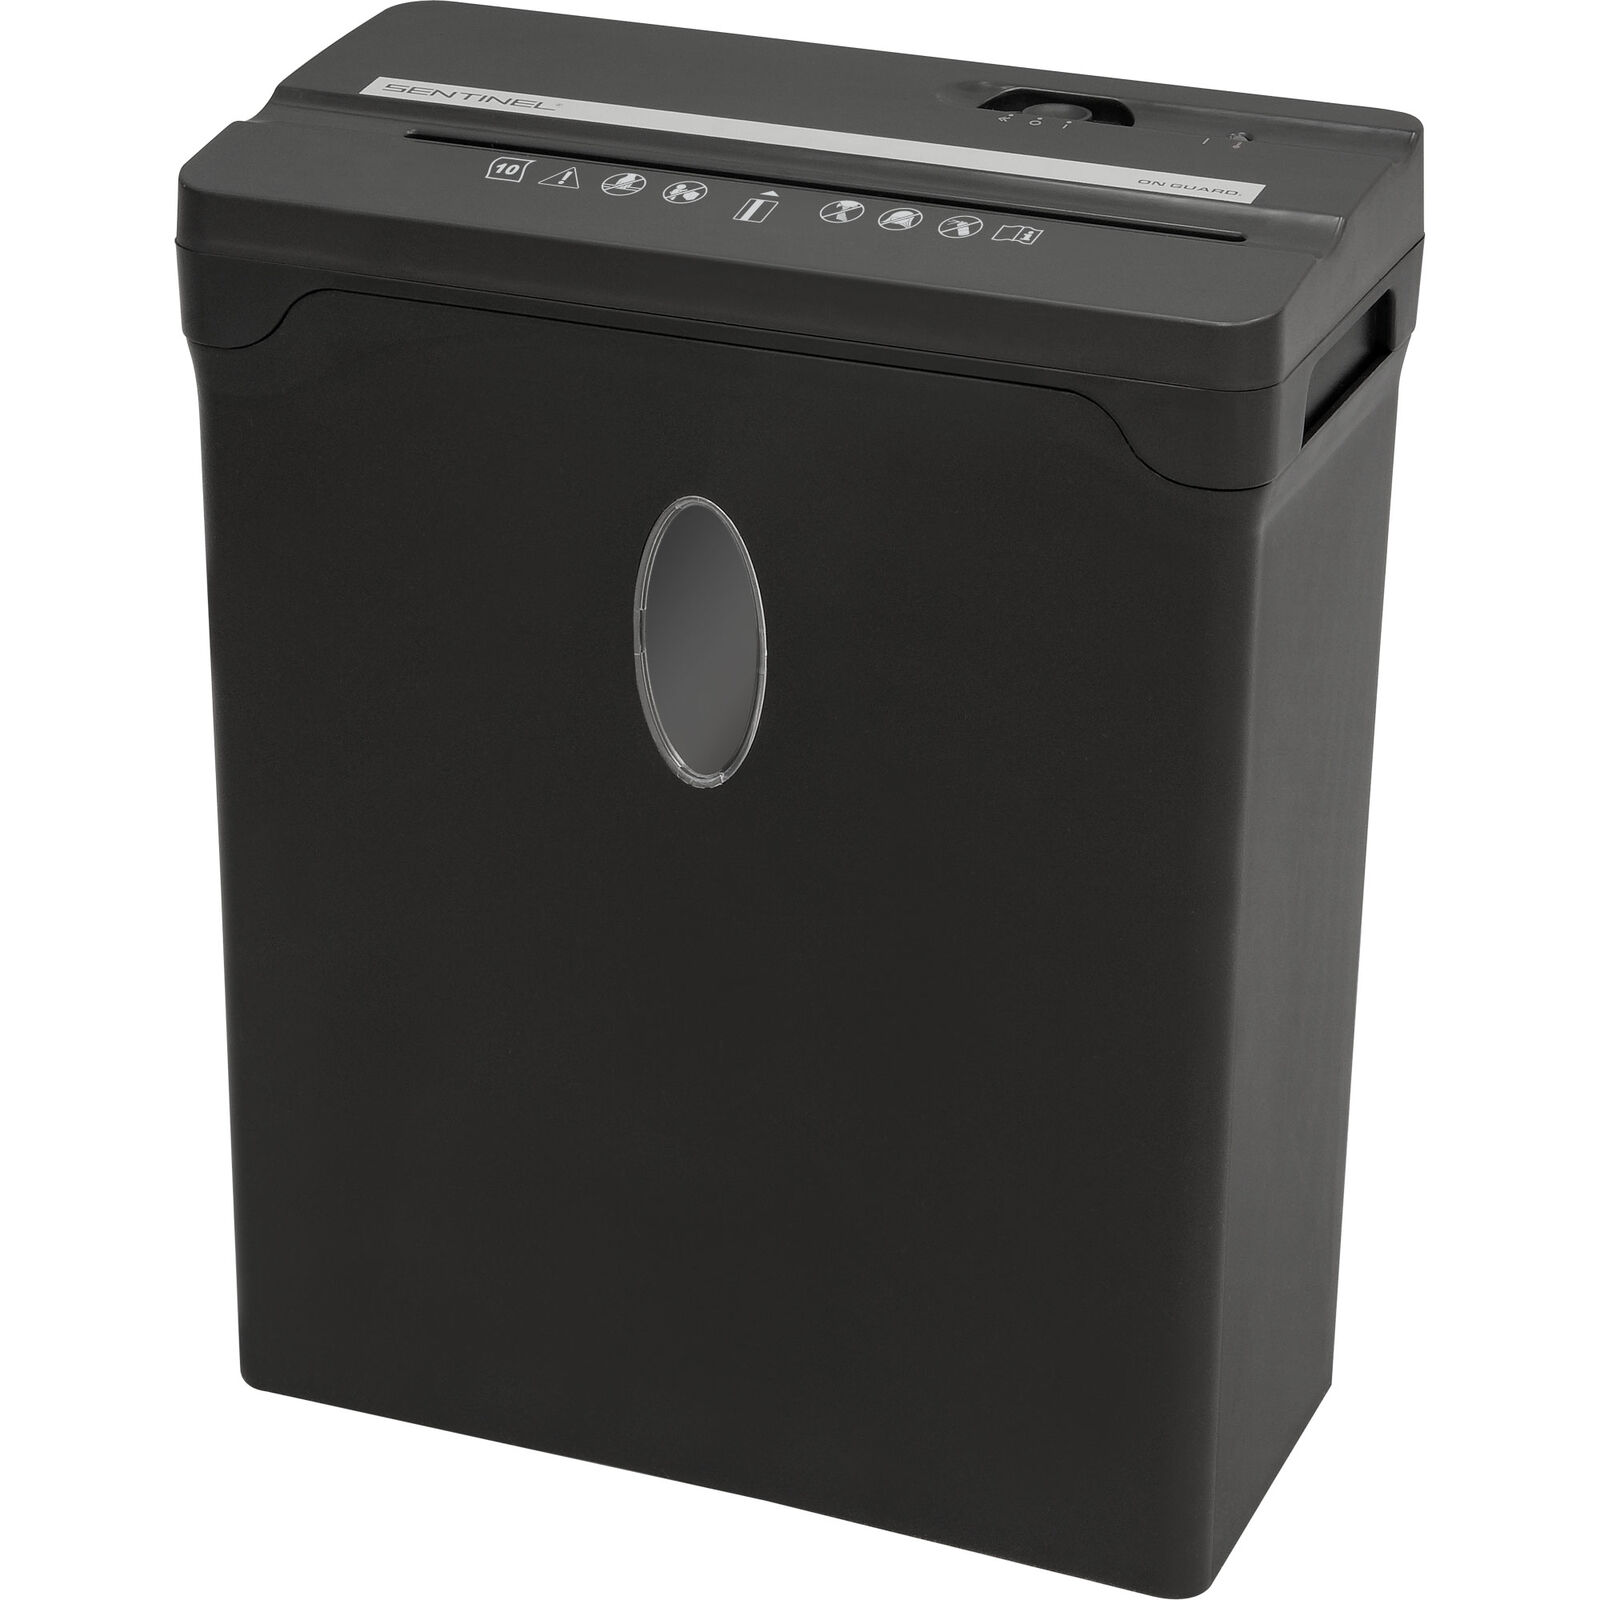 Sentinel Fx101b 10-sheet High Security Cross-cut Papercredit Card Shredder